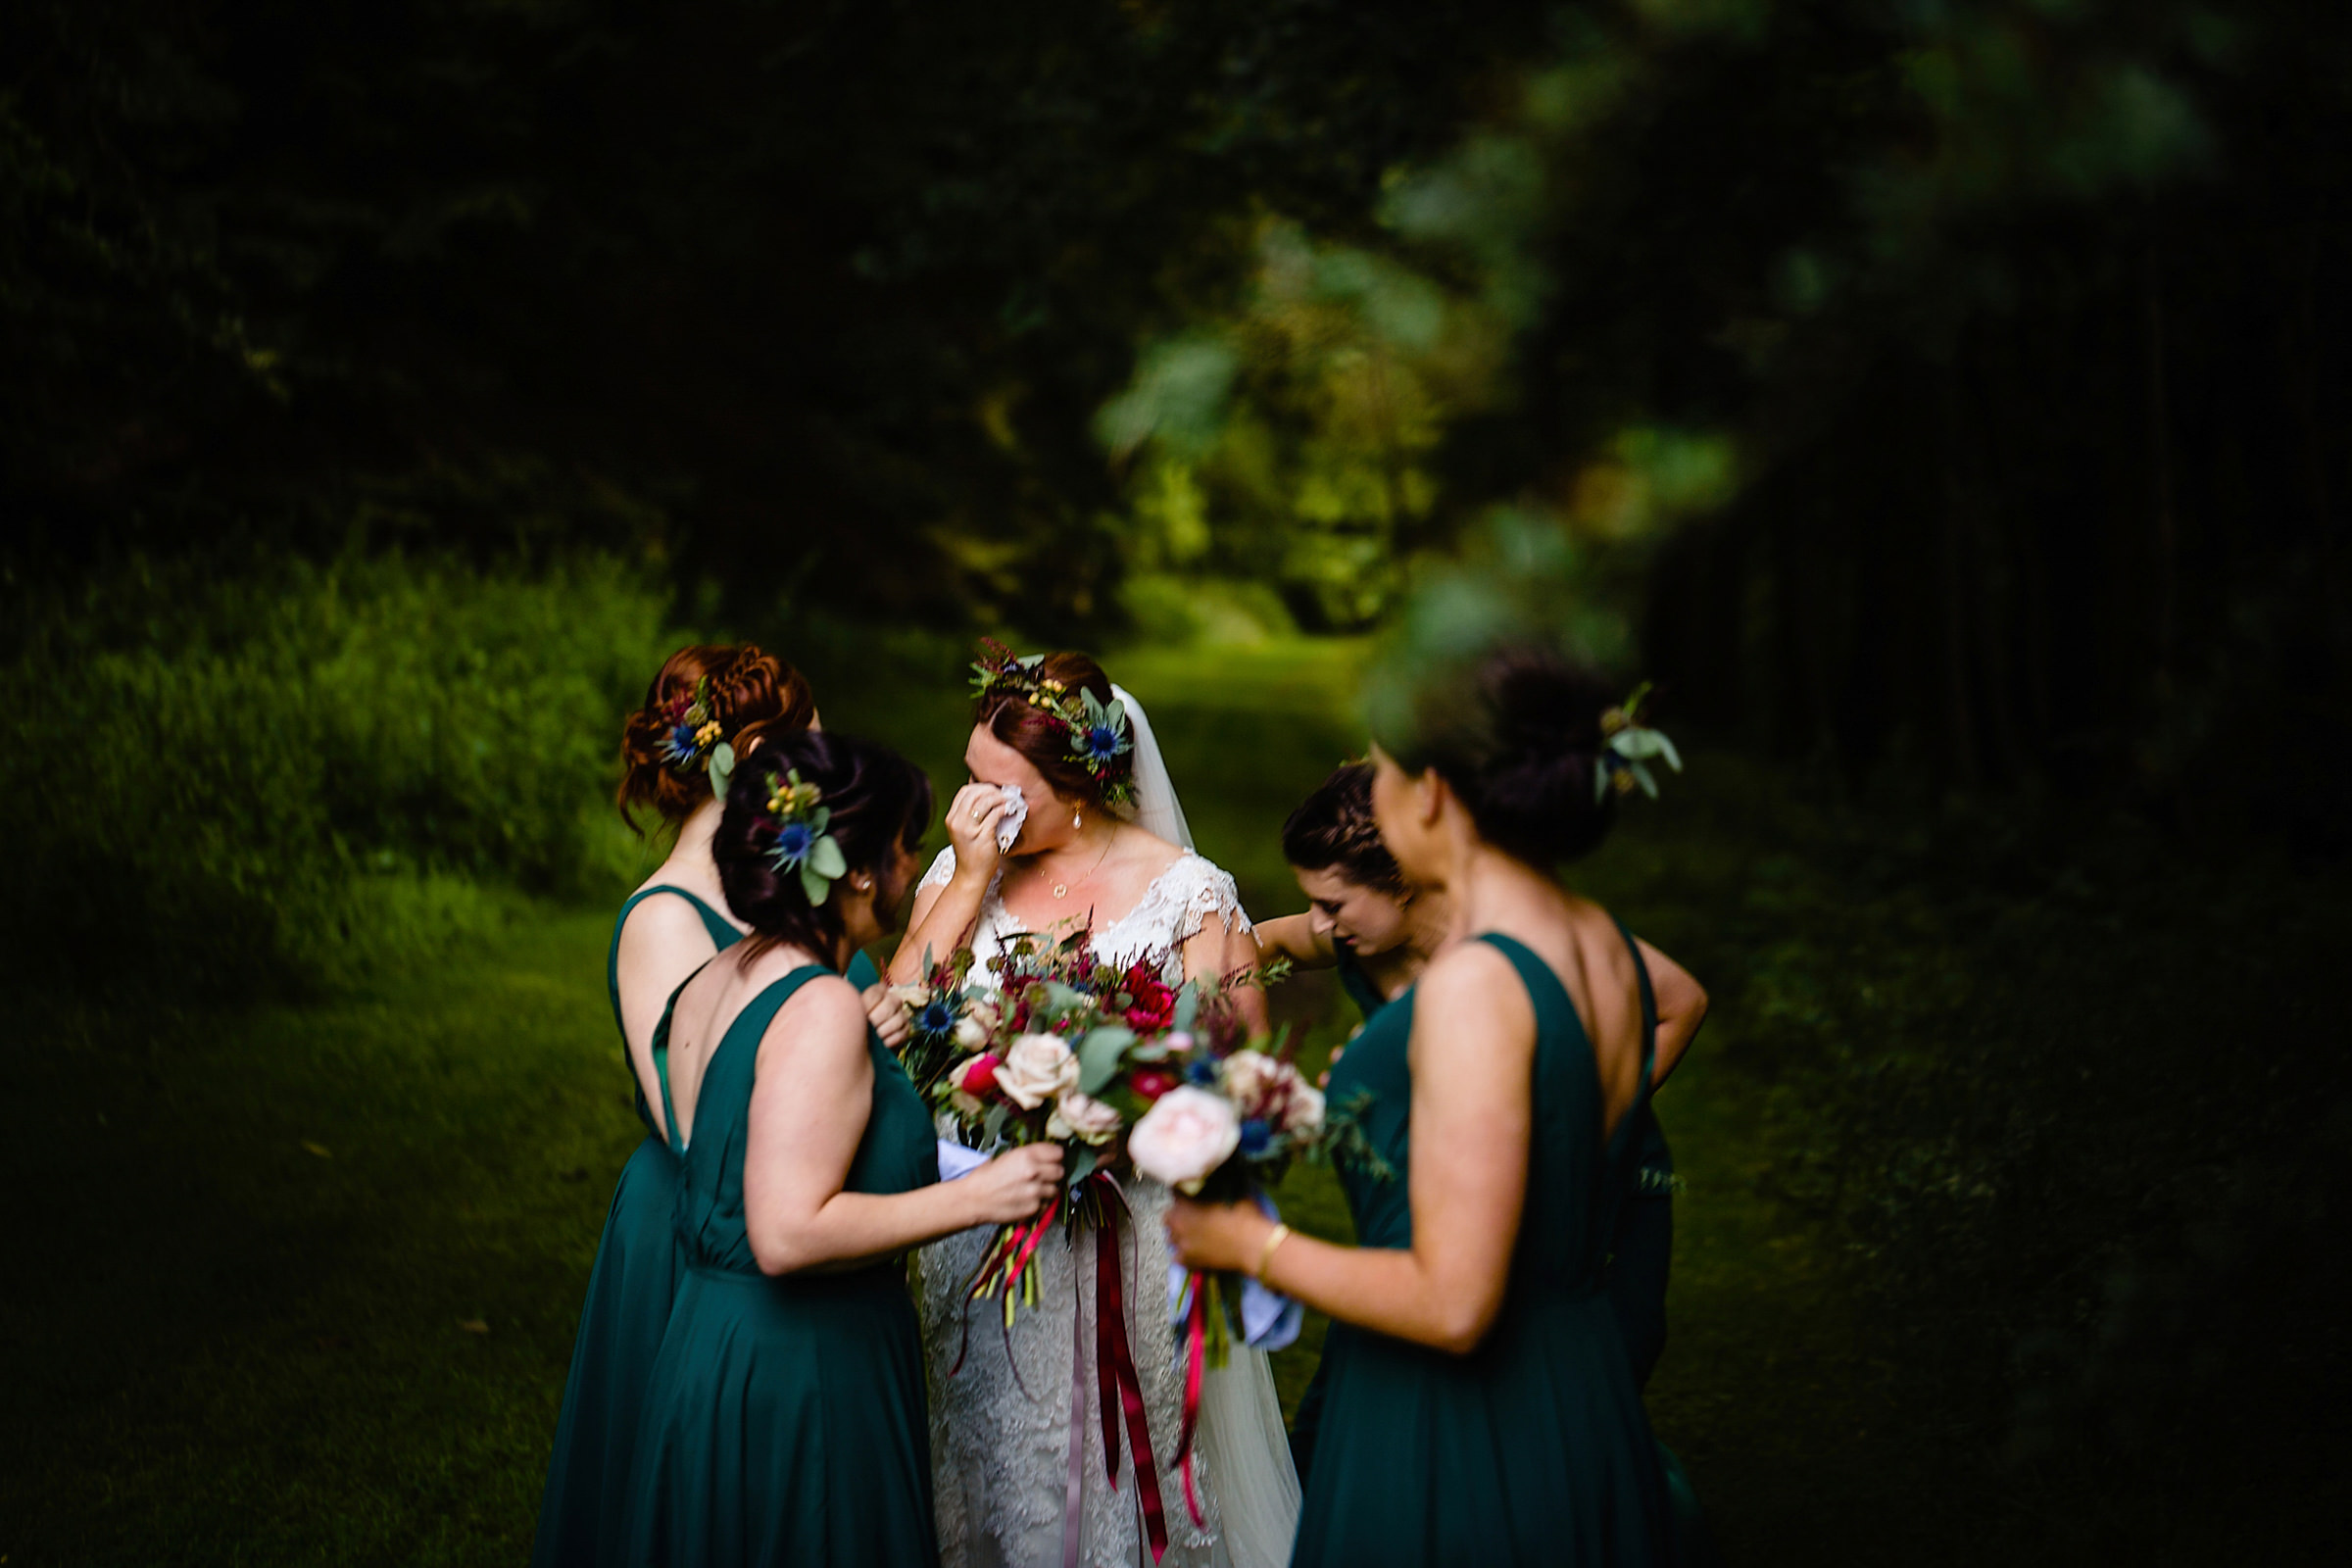 Emotional moment for bride with bridesmaids - photo by Emma + Rich